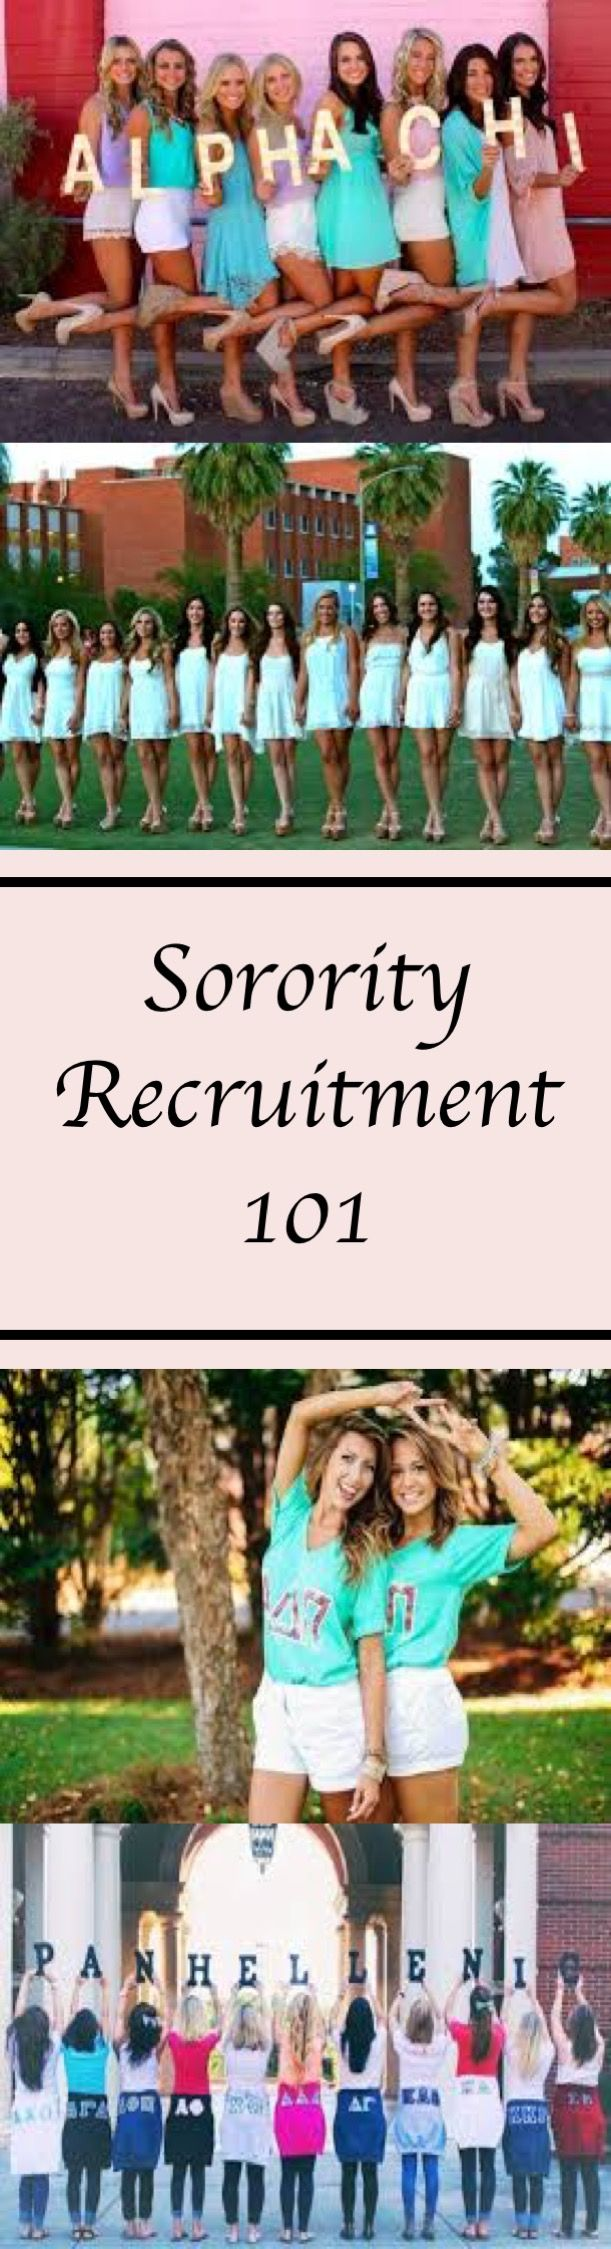 Everything you need to know to get through Sorority Recruitment! Outfits, Conversation, Tips, and More! #sorority #recruitment #rush #greek #college #backtoschool #phimu #chio #detlazeta #zeta #wardrobe #clothing #ootd #outfit #styleoftheday #fashionbloggers #fashionblog #beautybloggers #fblogger #fbloggers #bbloggers #style #styling #fromwhereistand #onlineshopping #haul #outfitoftheday #styleblogger  #fashionblogger #whatiwore #fashiondiaries #outfitideas #outfitinspiration #stylegram…